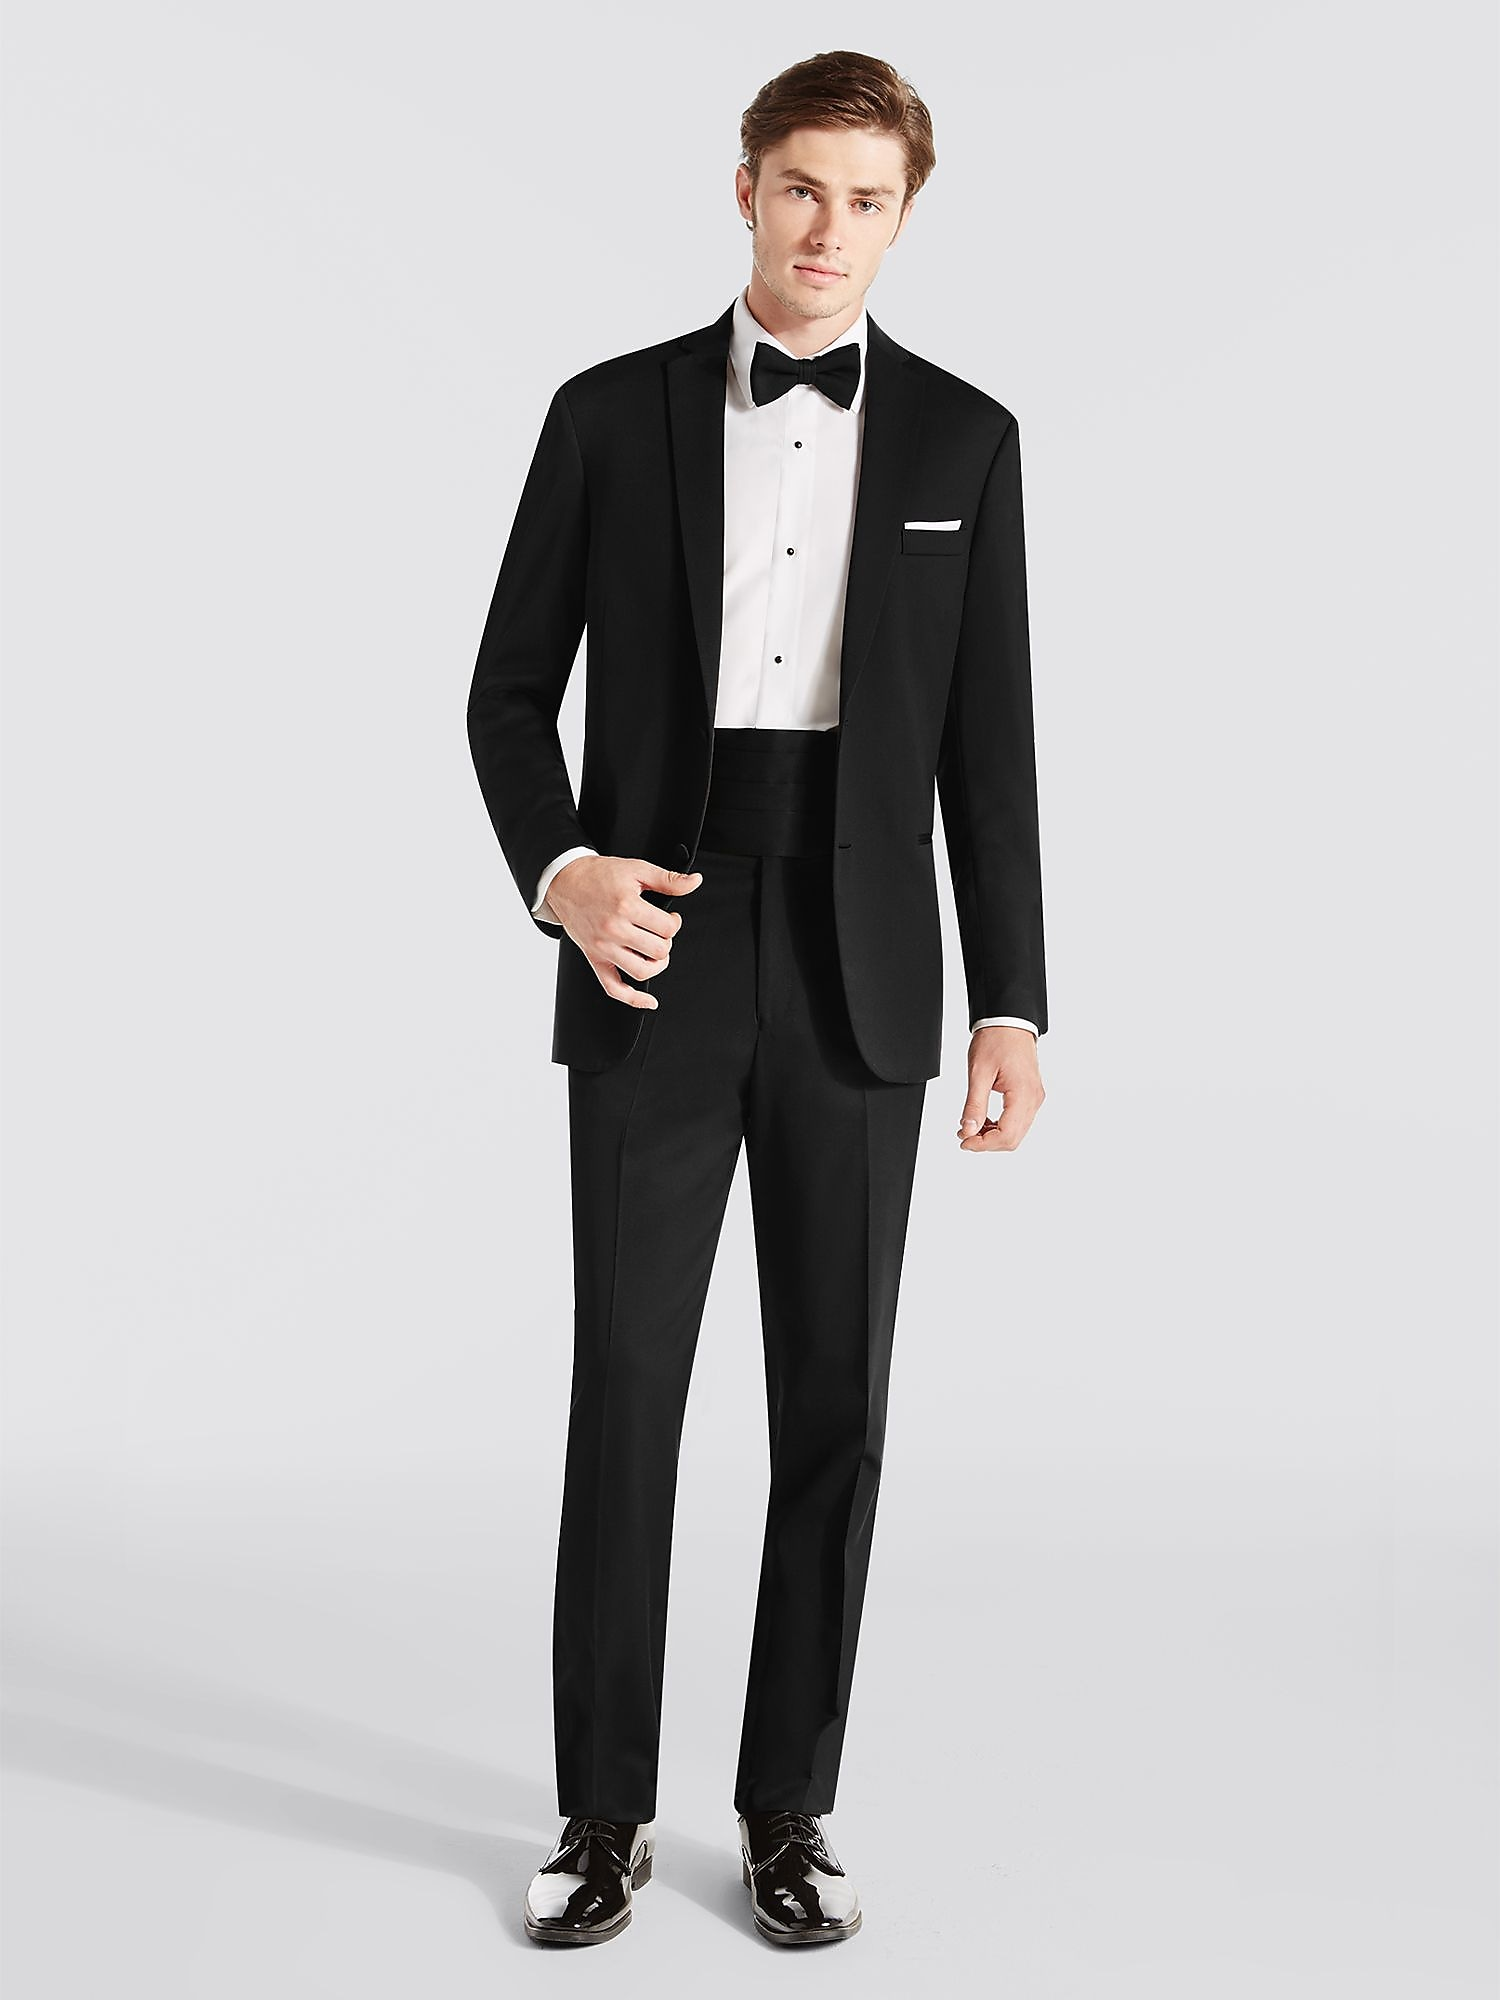 Exclusive prom suits suit la for Tuxedo house